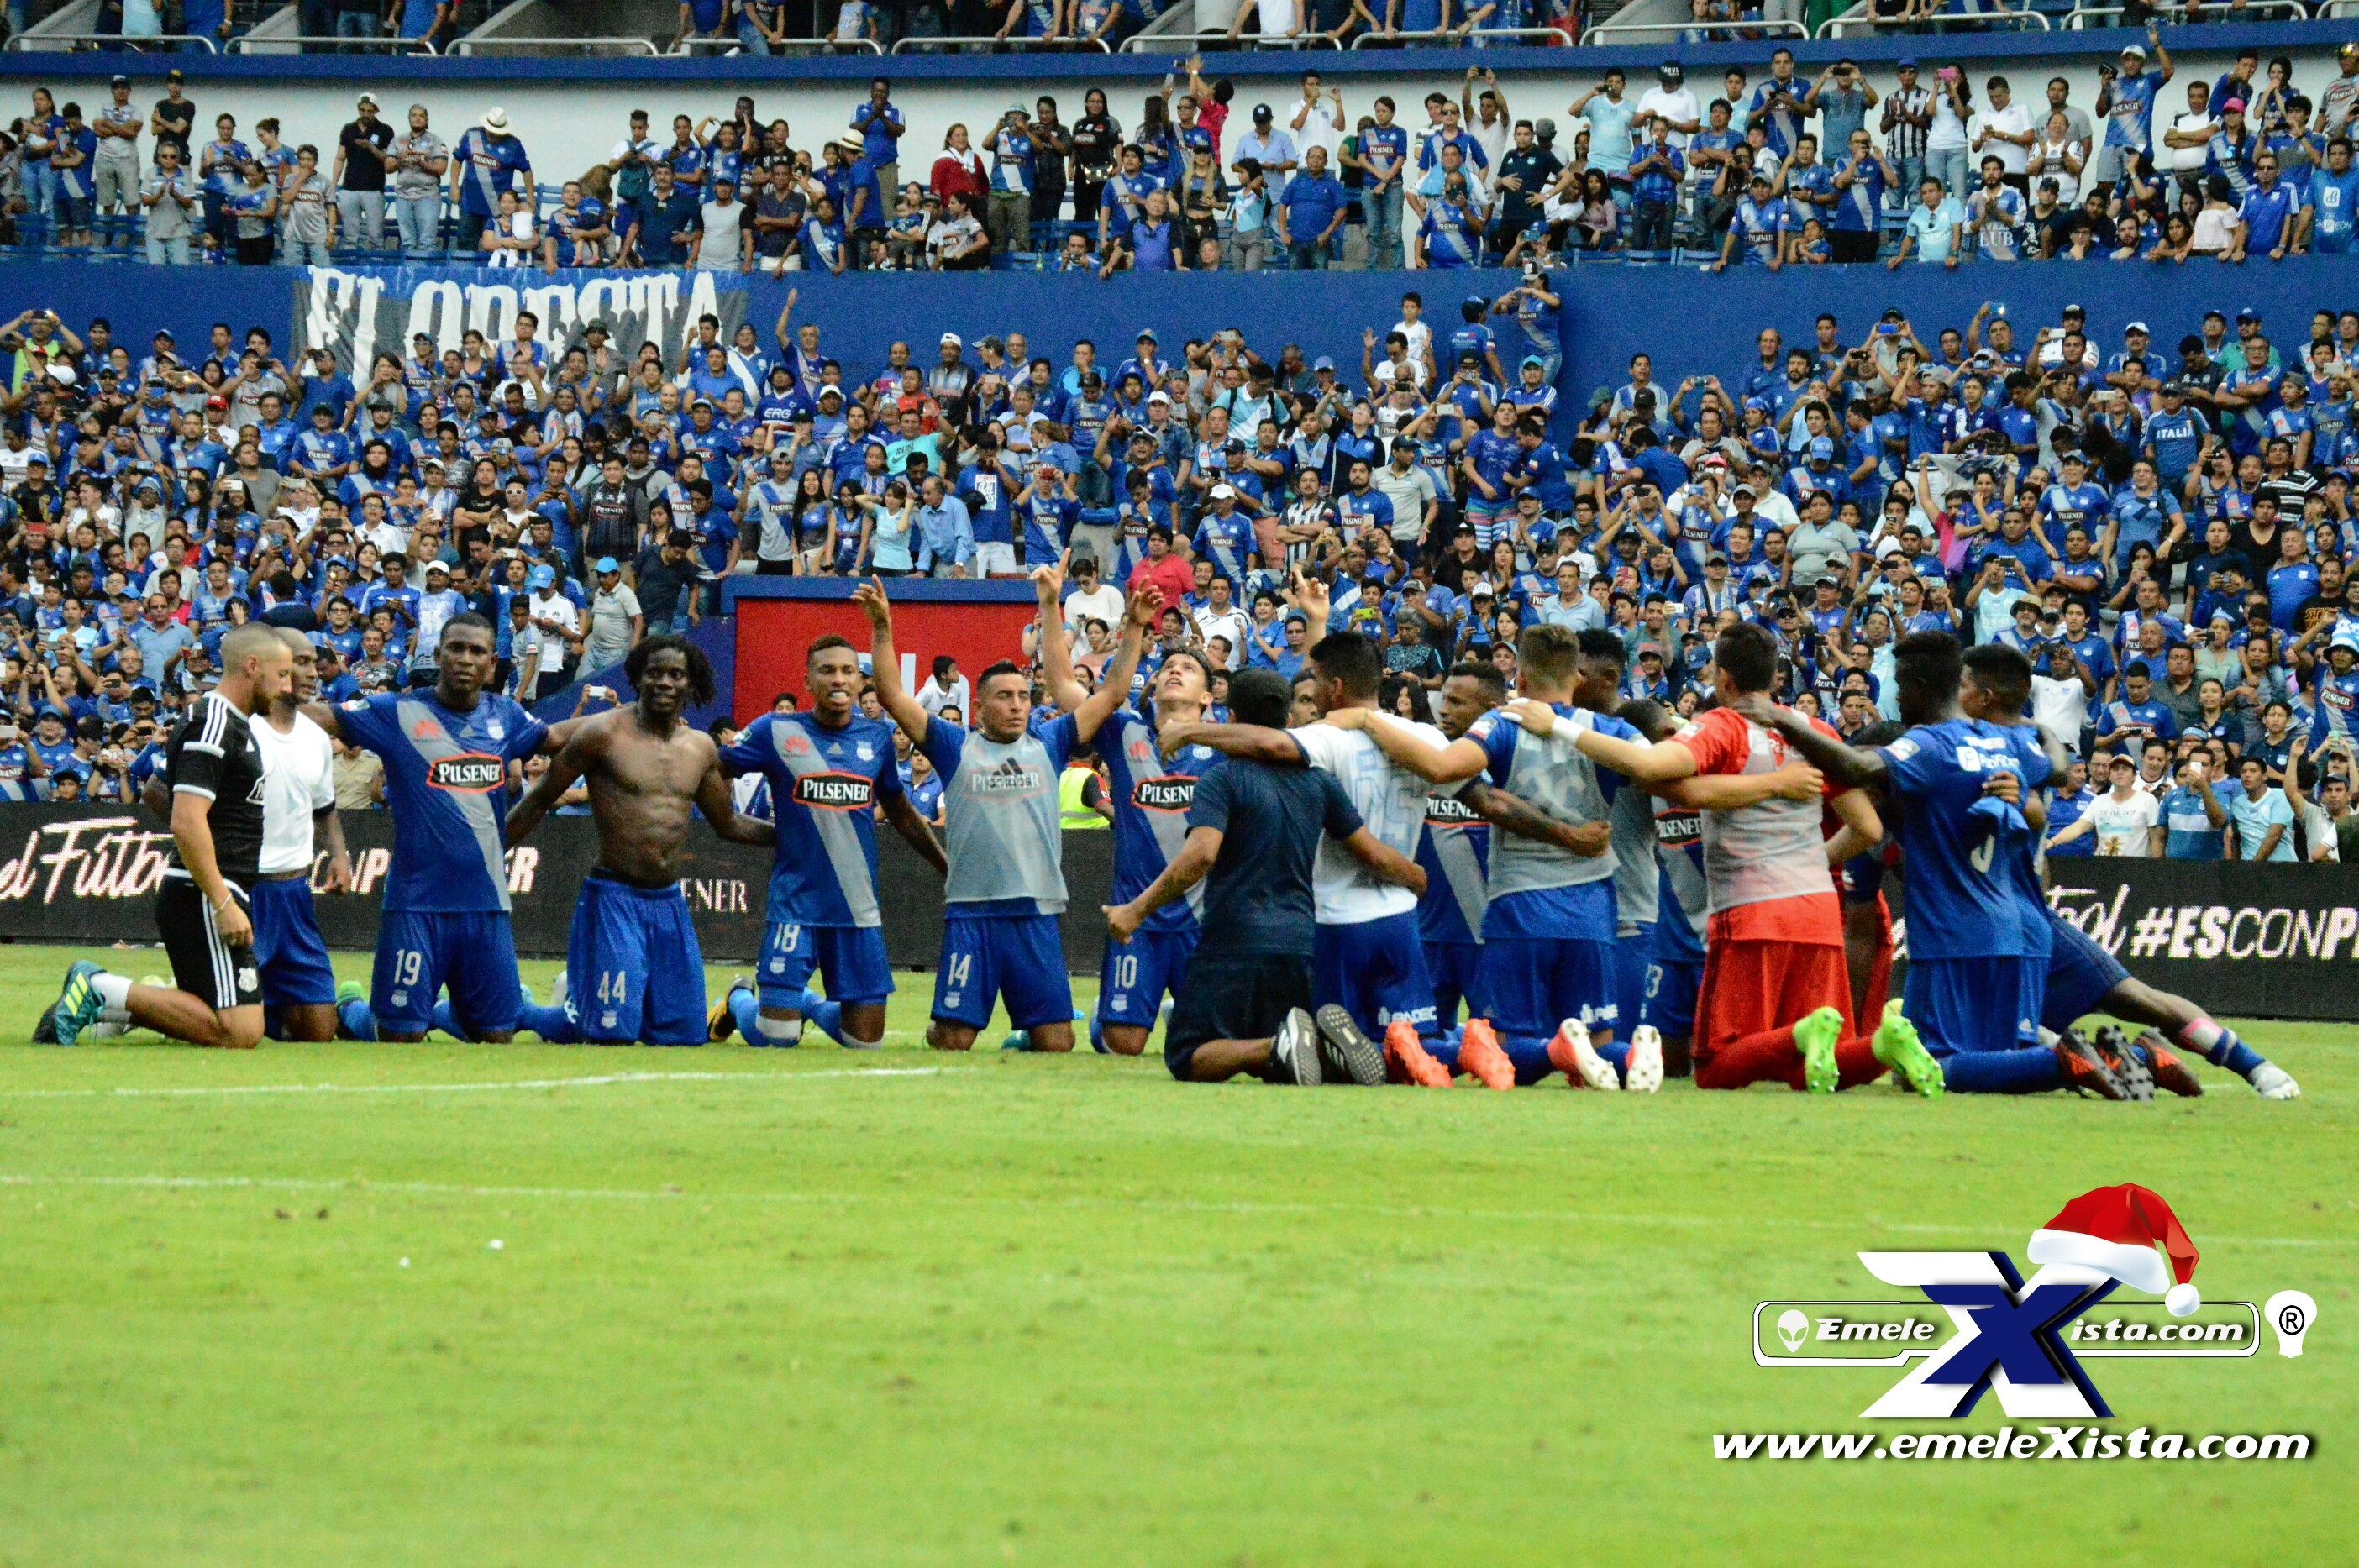 Emelec Guayaquil City Estadio Capwell